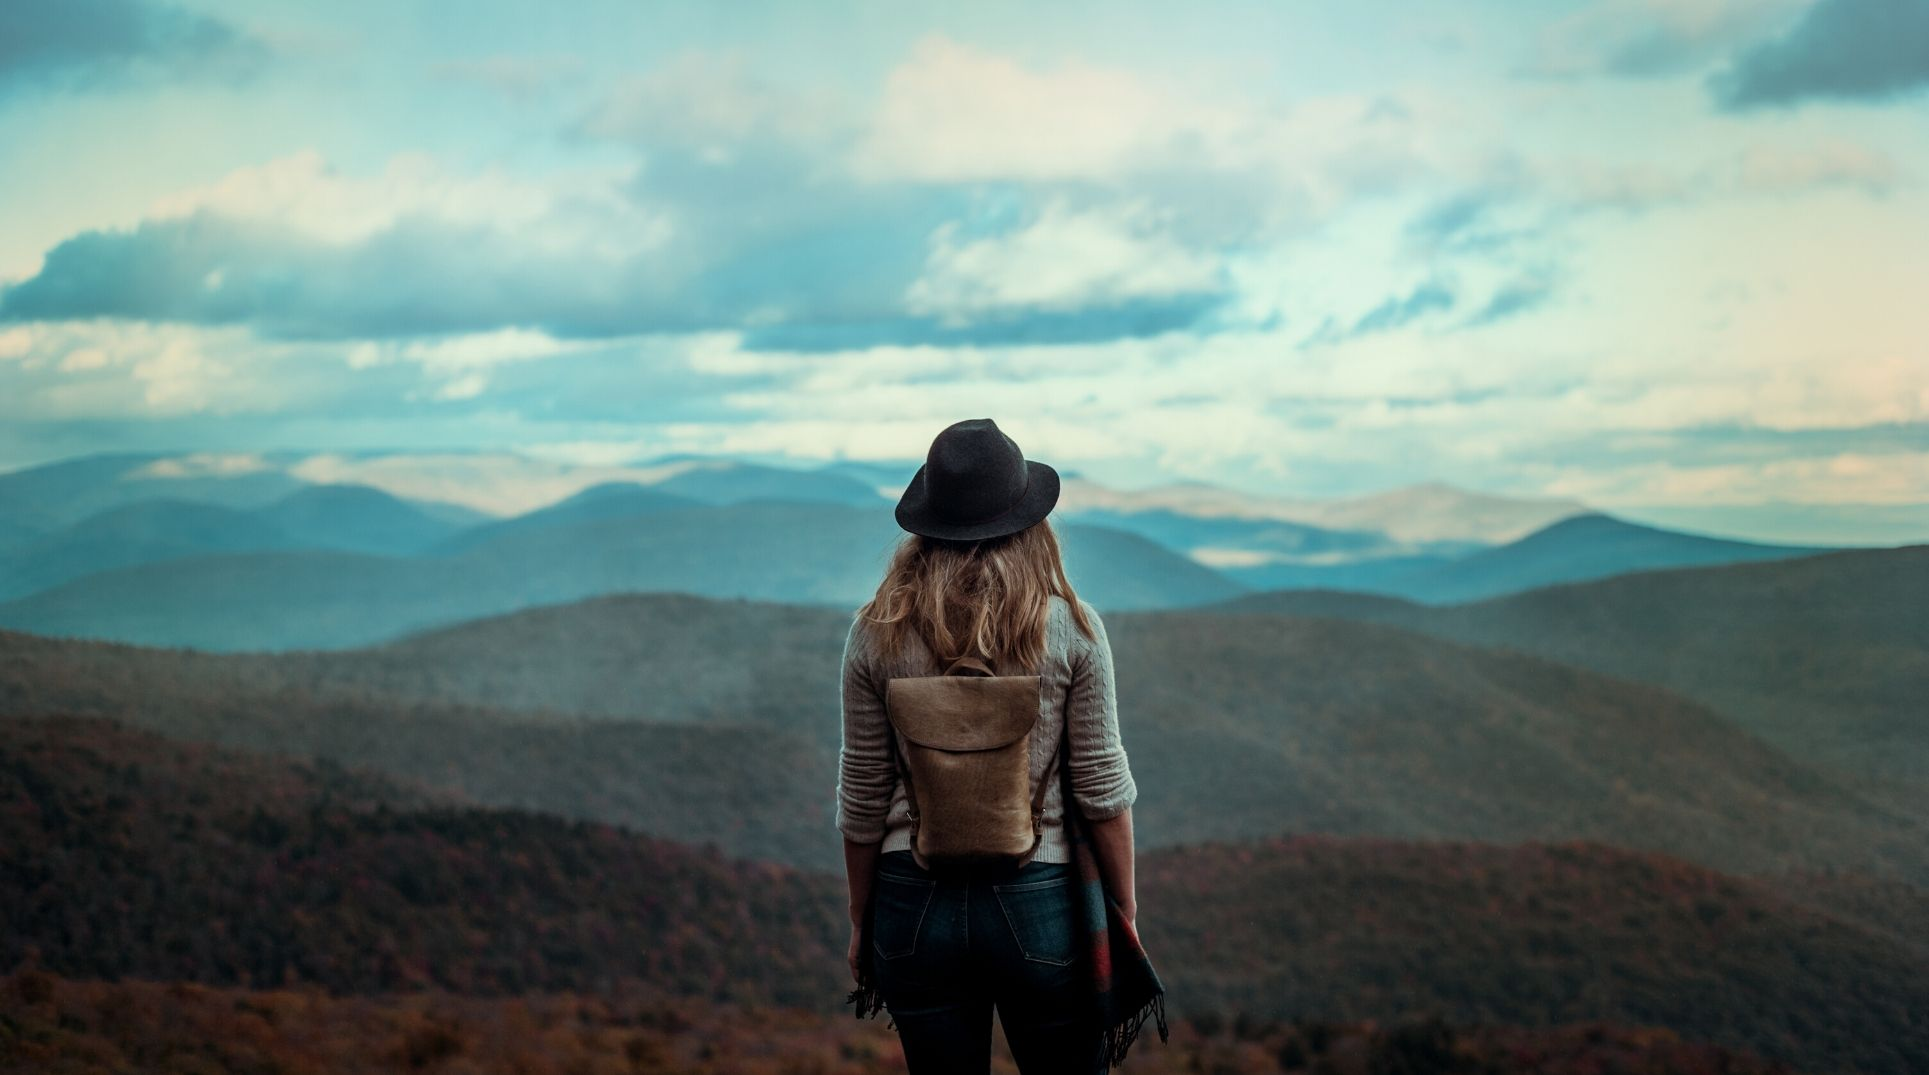 woman with backpack looking out over mountain landscape